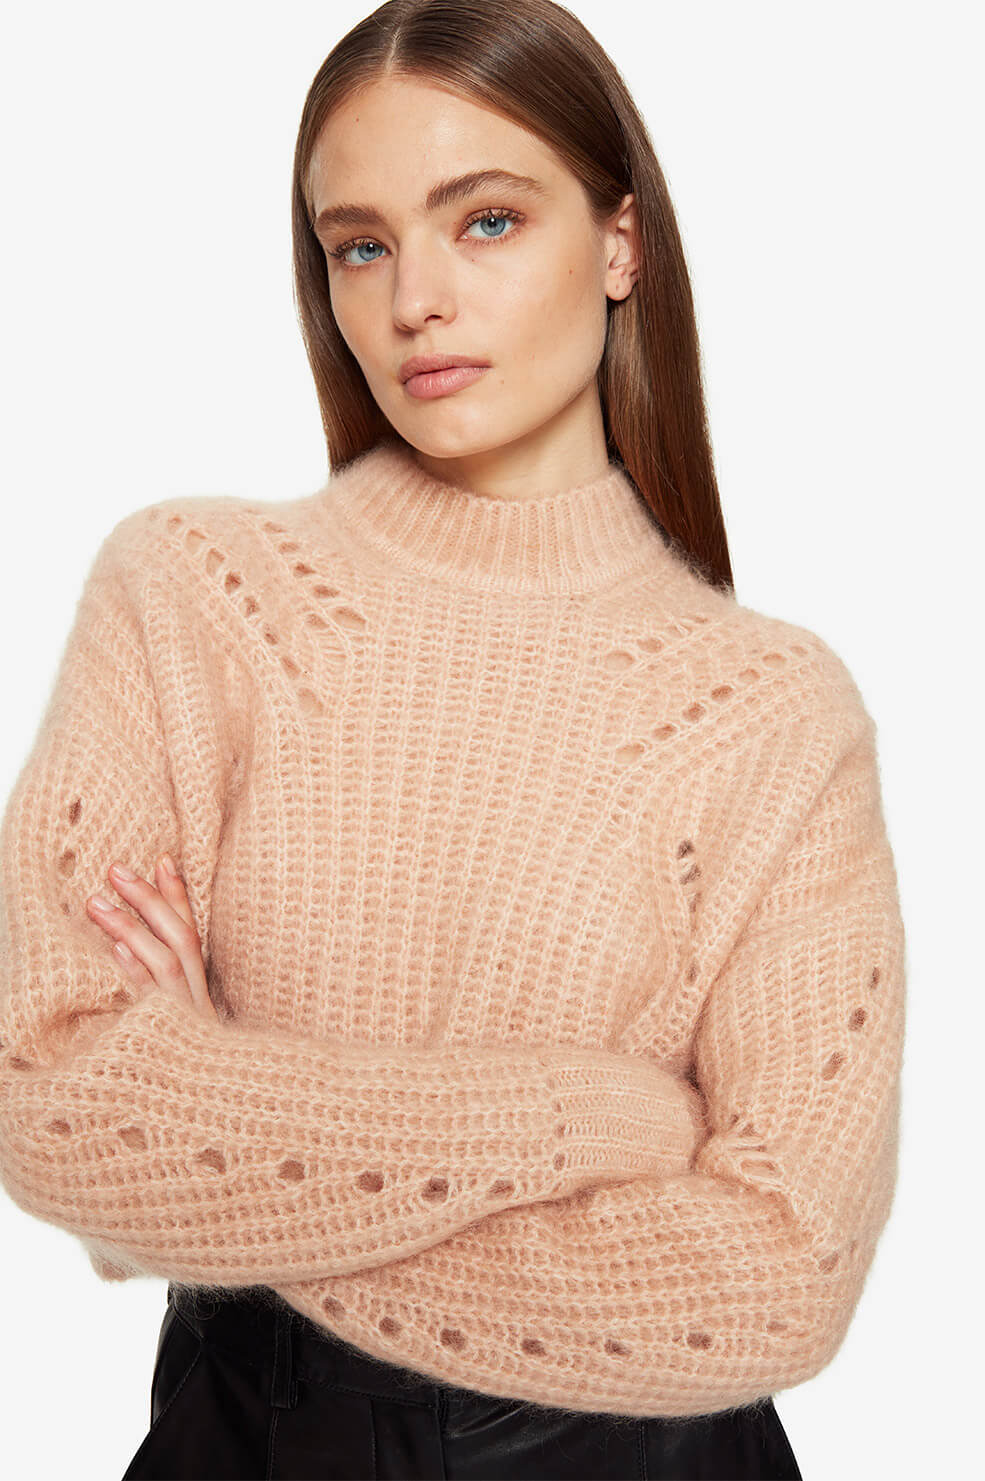 ANINE BING Jordan Sweater - Peach